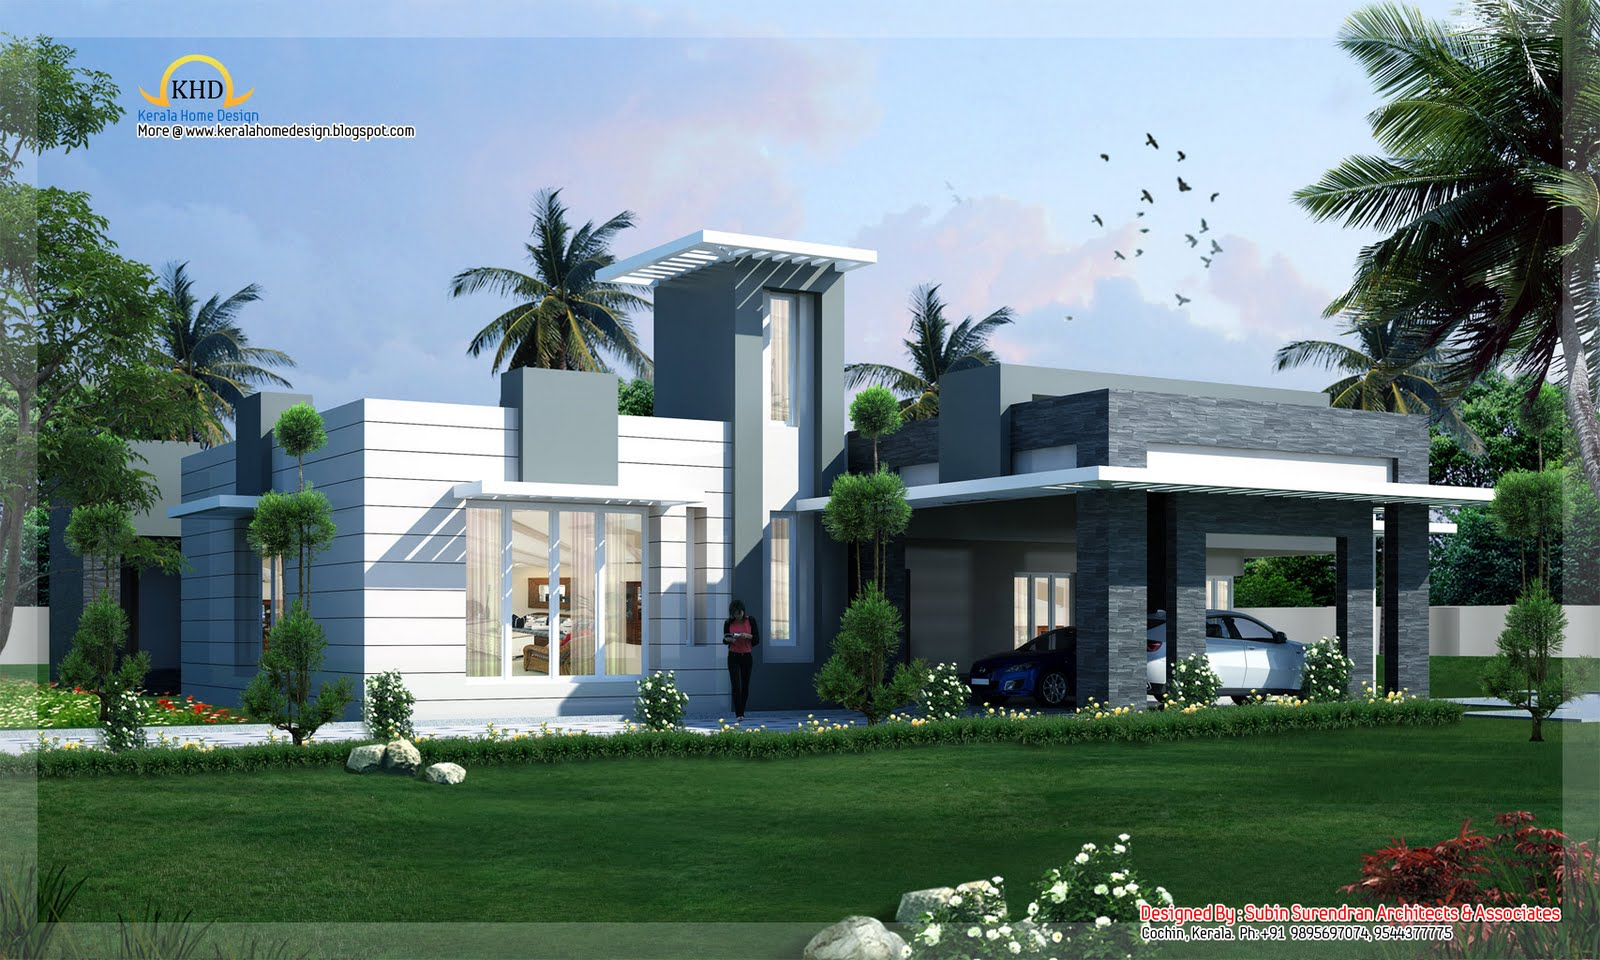 Modern contemporary home design - 4500 Sq Ft. - Kerala home design